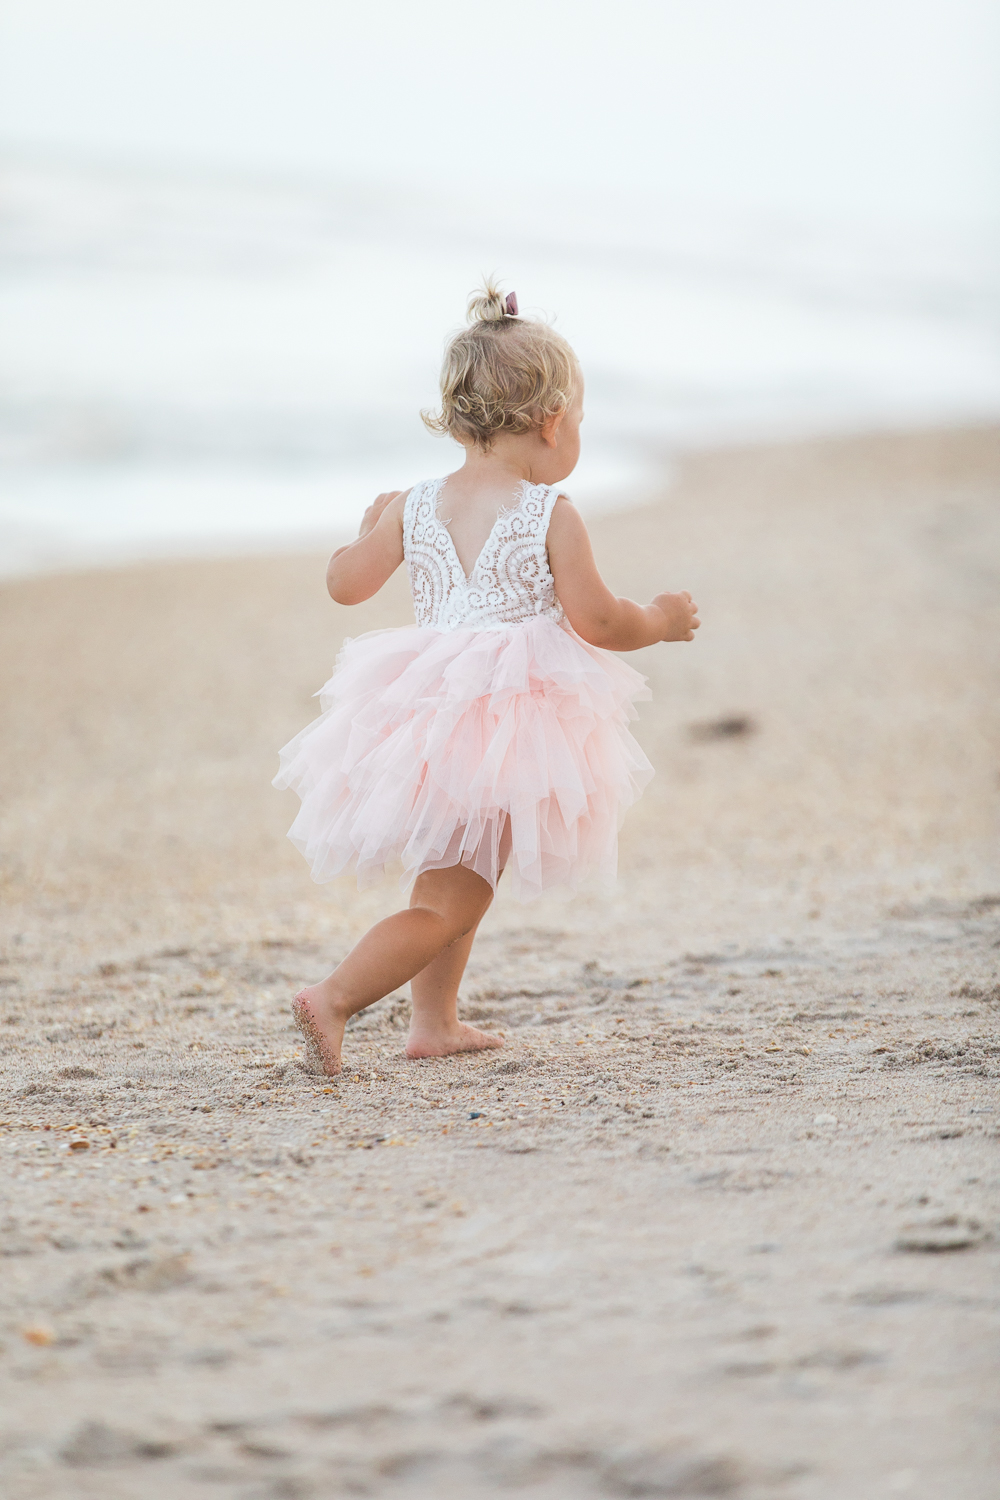 lace and tulle skirt dress ideas for toddlers